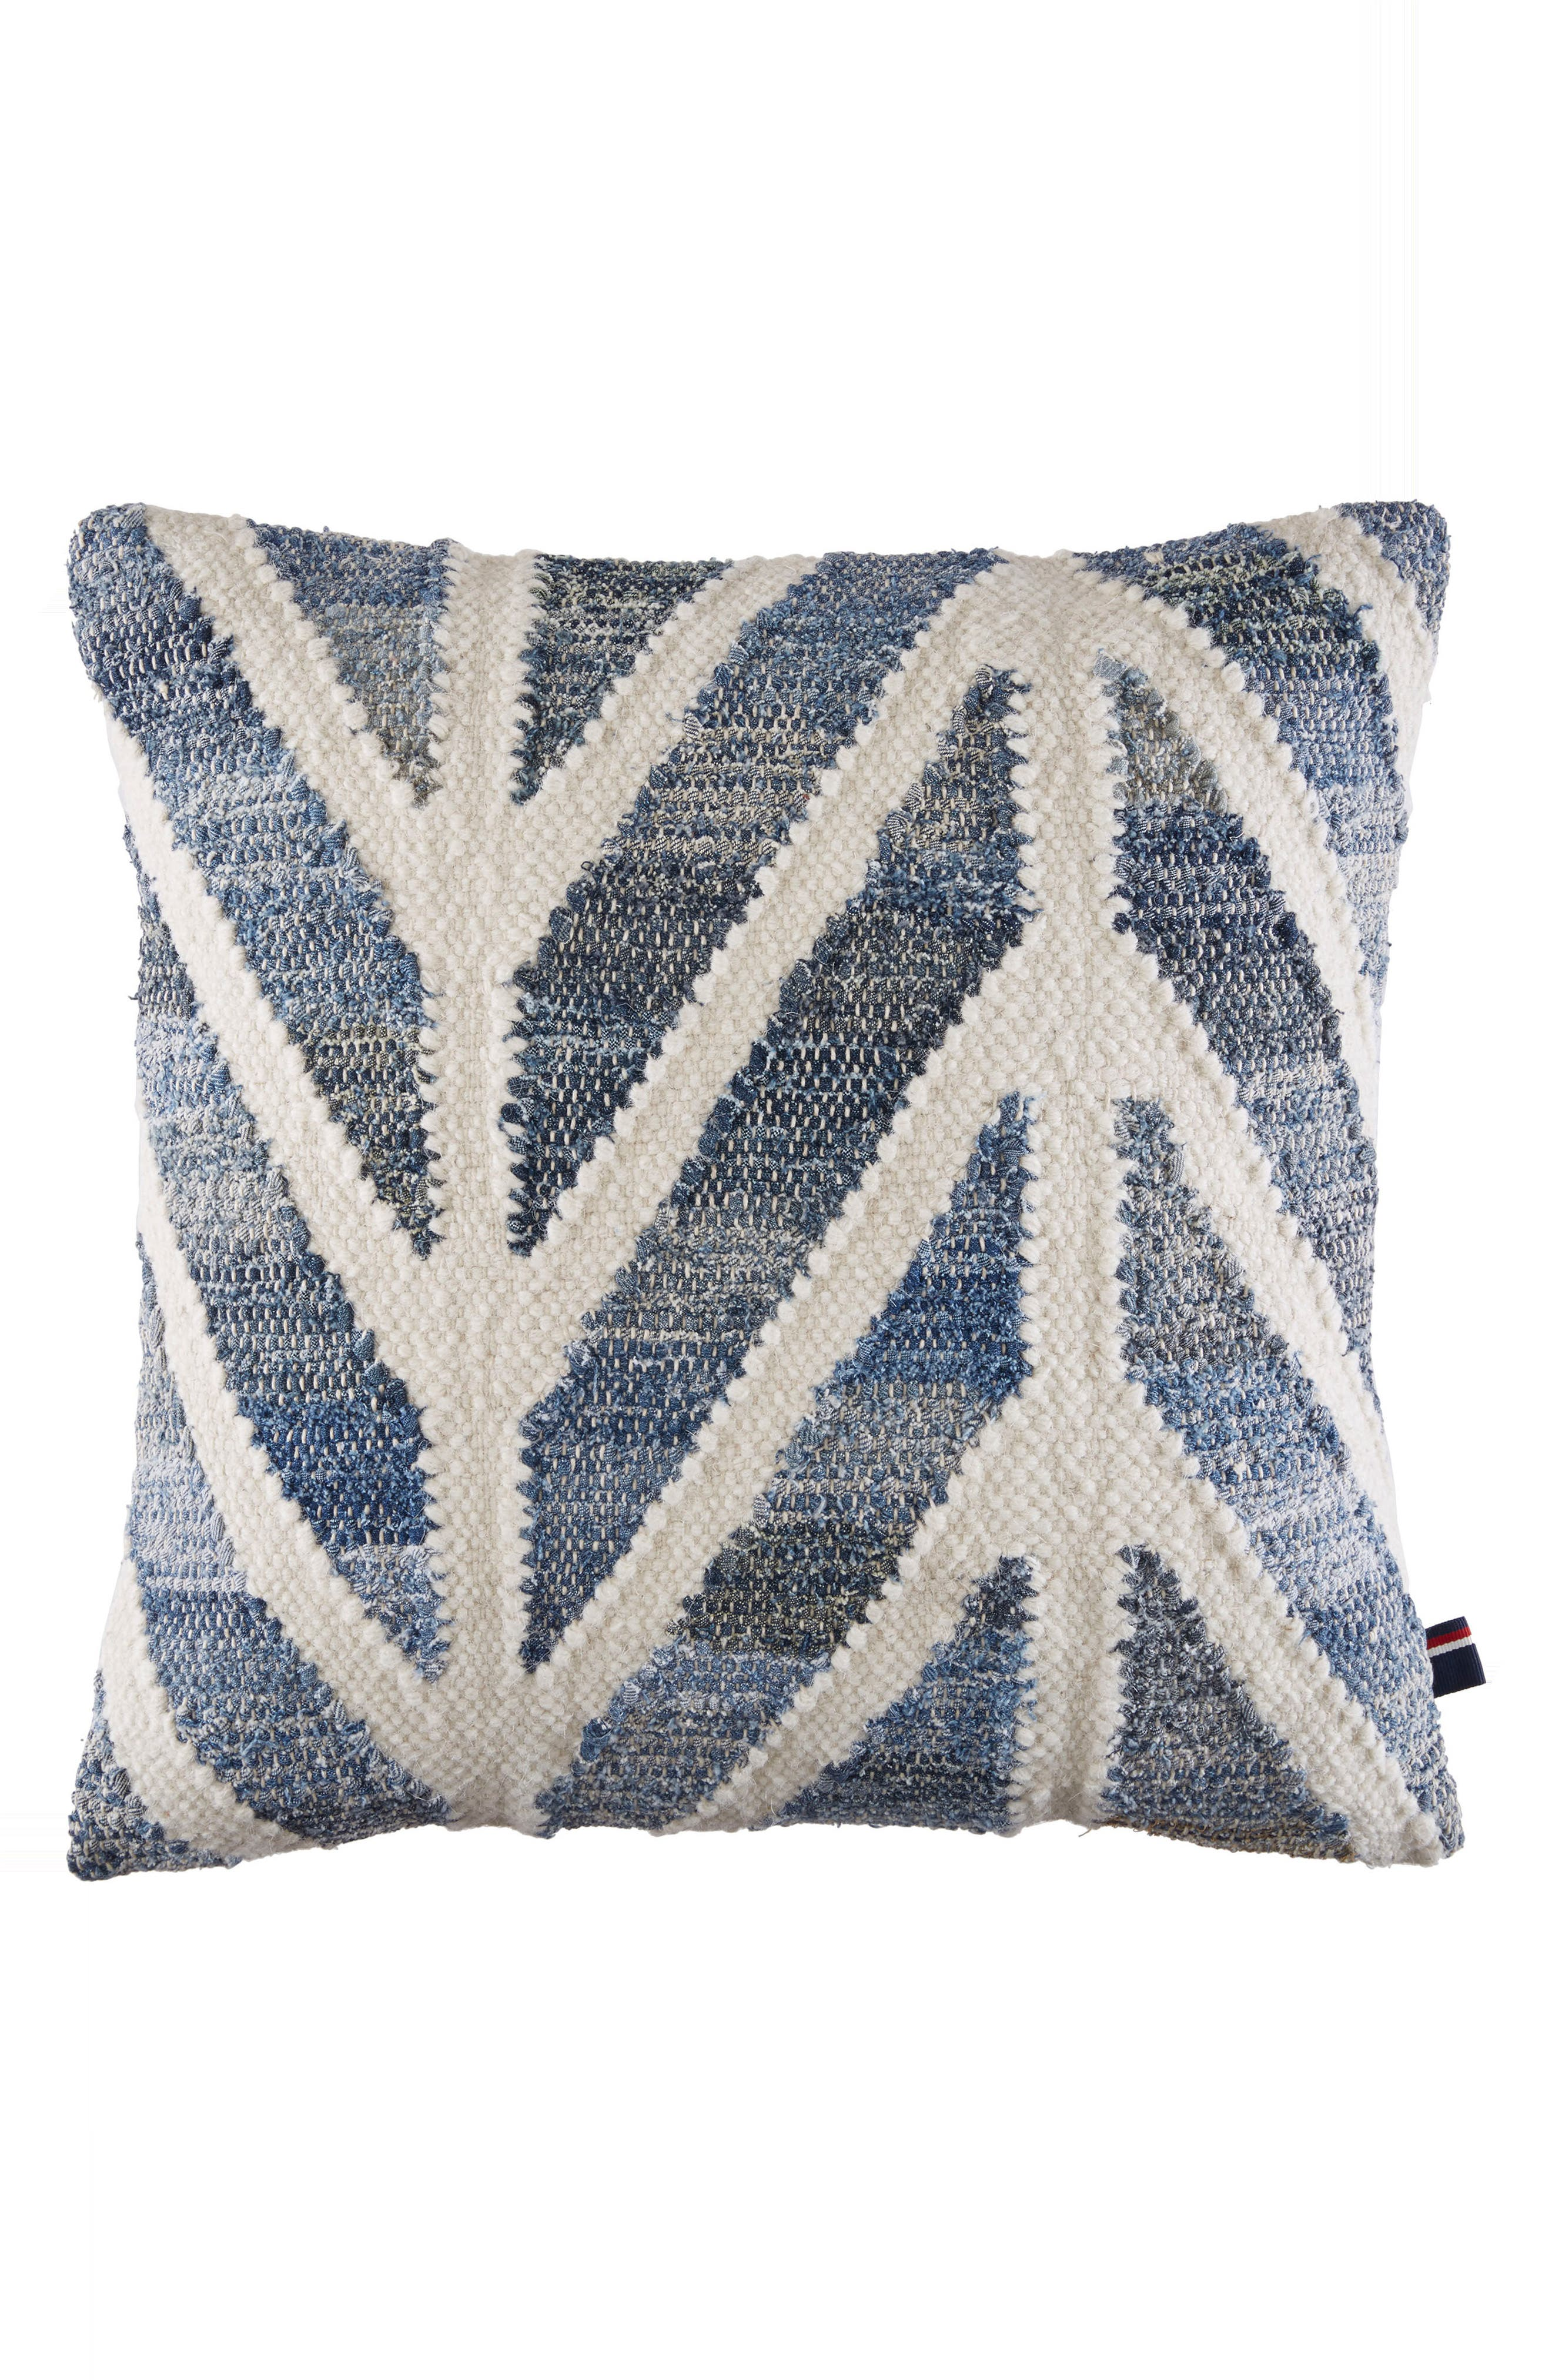 Indigo Chevron Accent Pillow,                         Main,                         color, 425